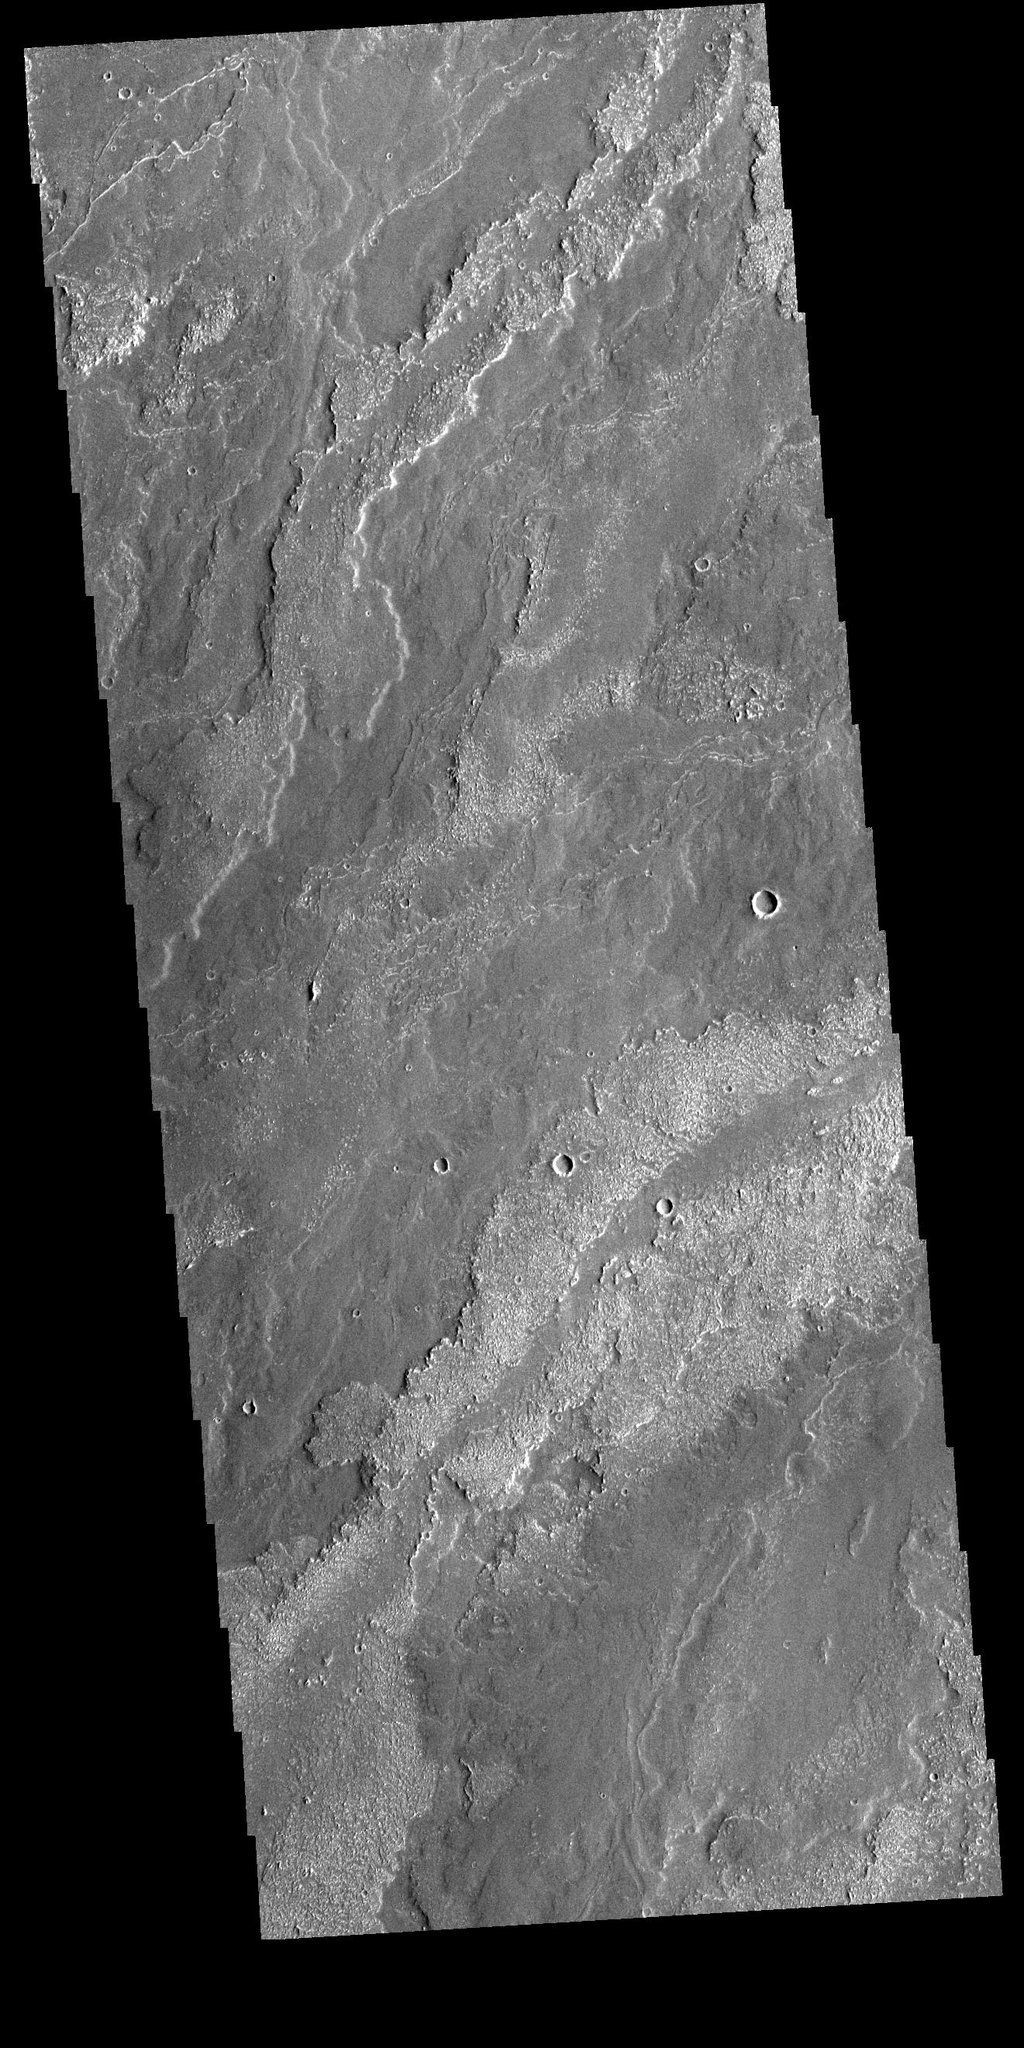 This image from NASA's Mars Odyssey shows part of the extensive lava flows that comprise Daedalia Planum.